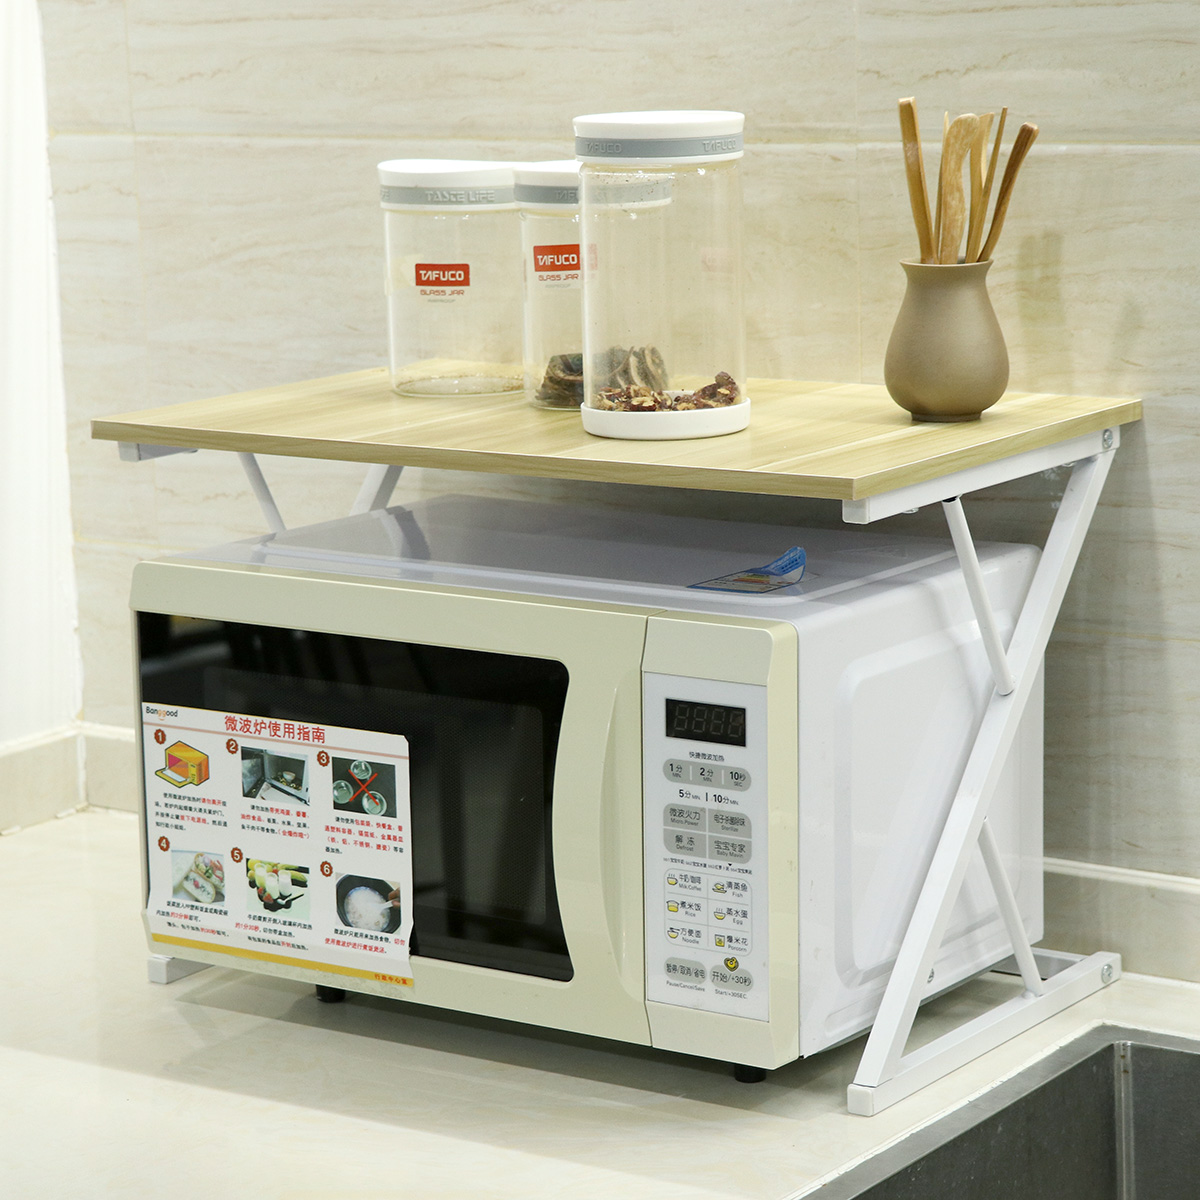 wood microwave oven rack wood microwave oven stand rack 2 layers storage racks kitchen cabinet counter shelf microwave oven rack microwave oven stand